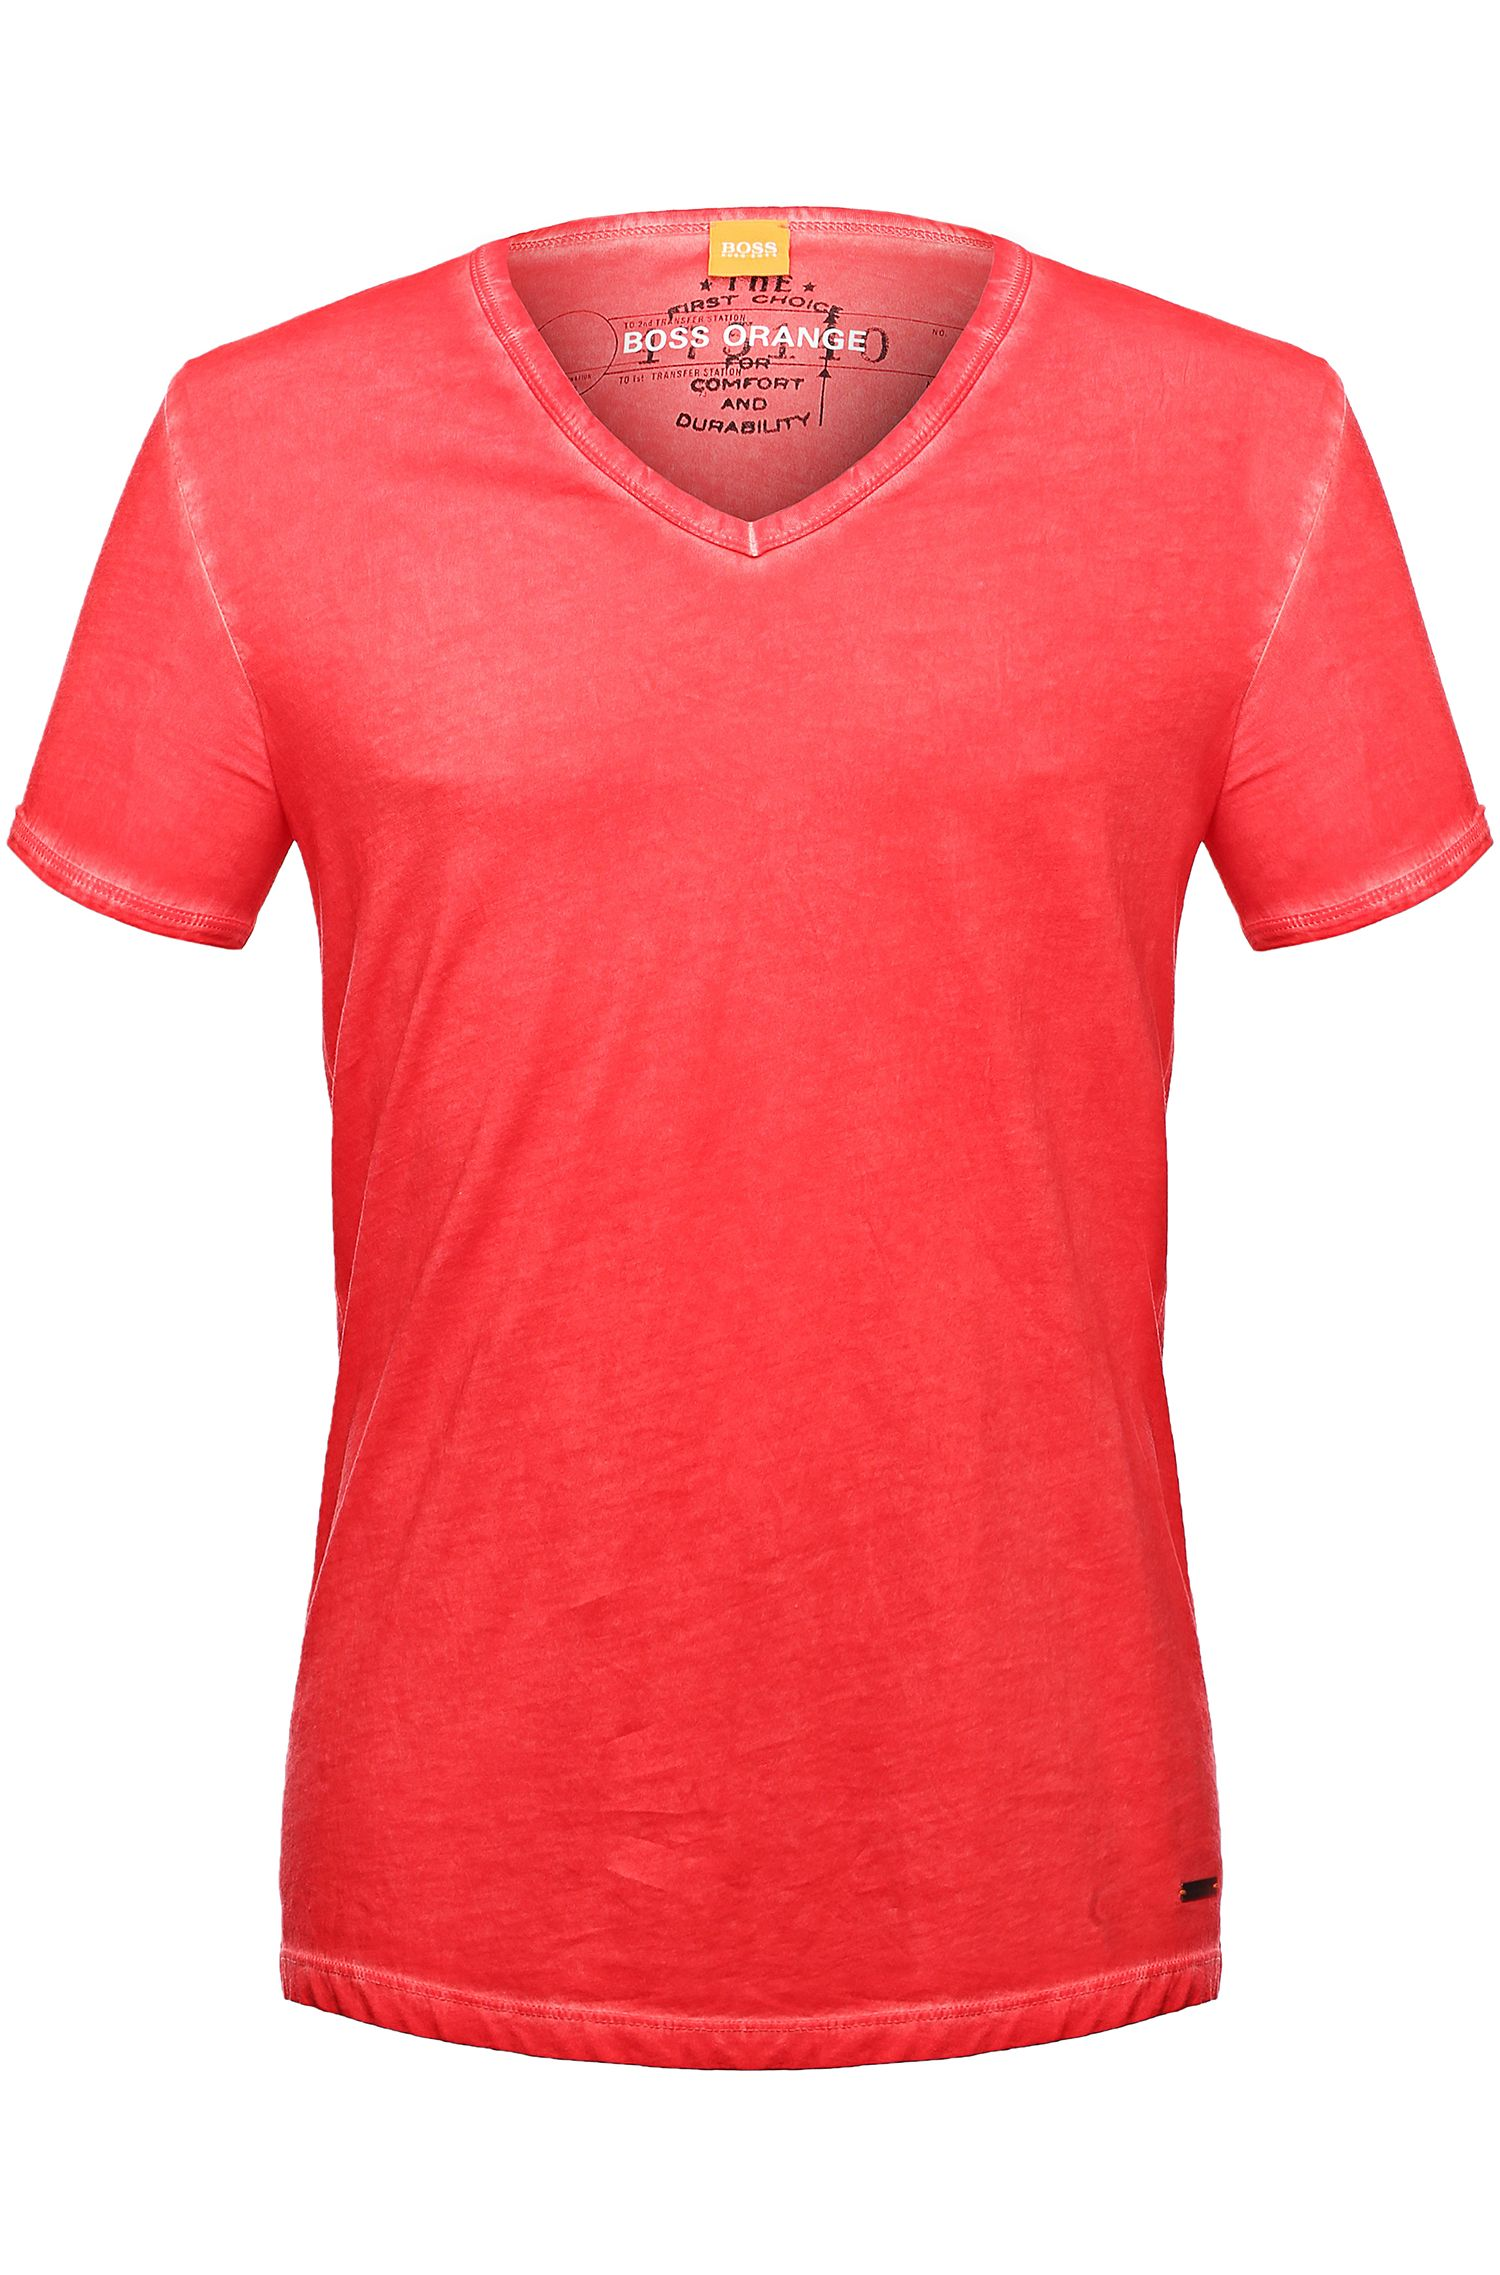 Regular-fit T-shirt in garment-dyed cotton by BOSS Orange